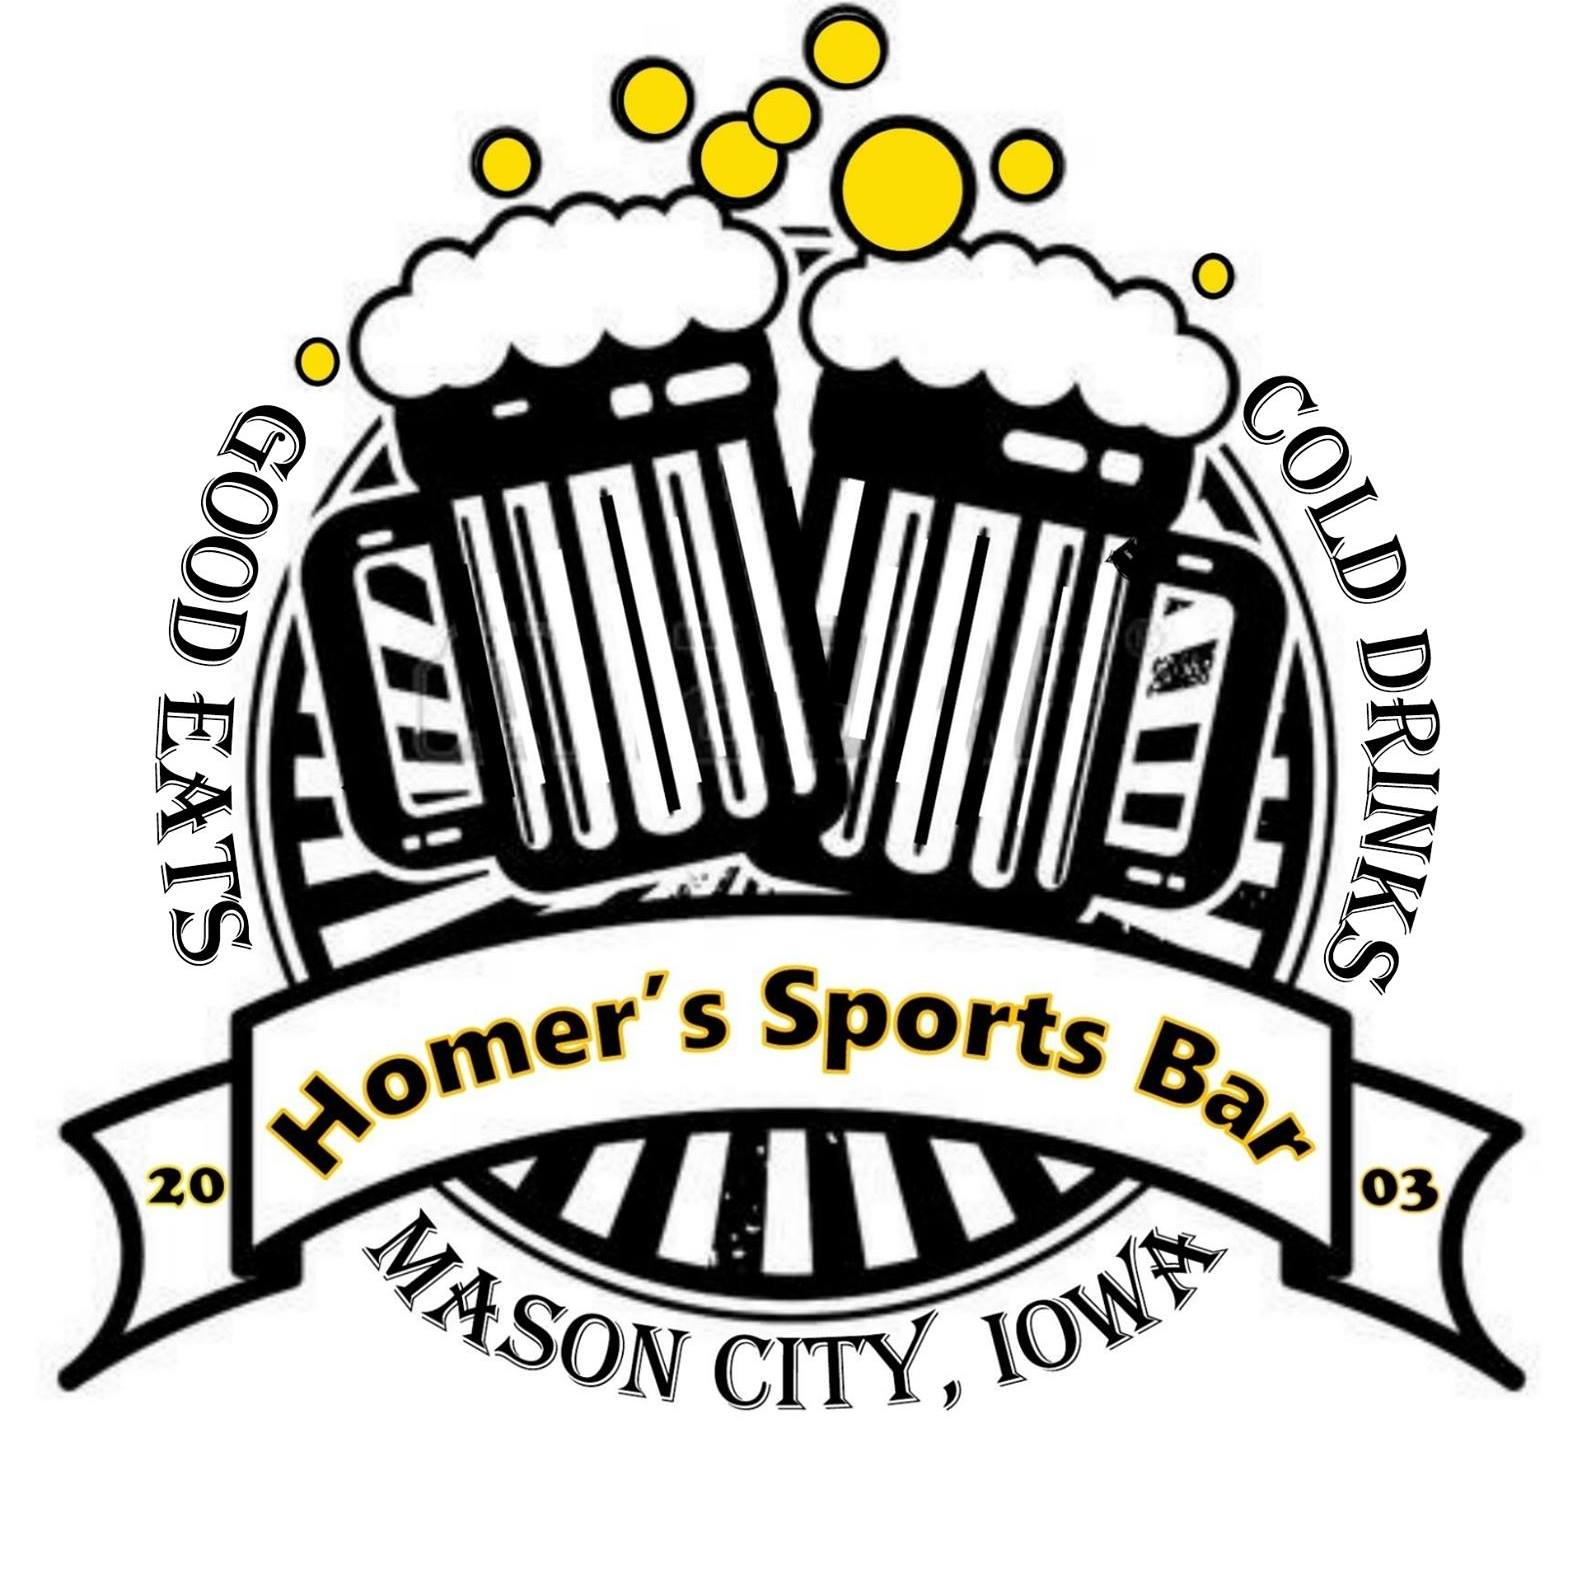 Homers Sports Bar & Grille